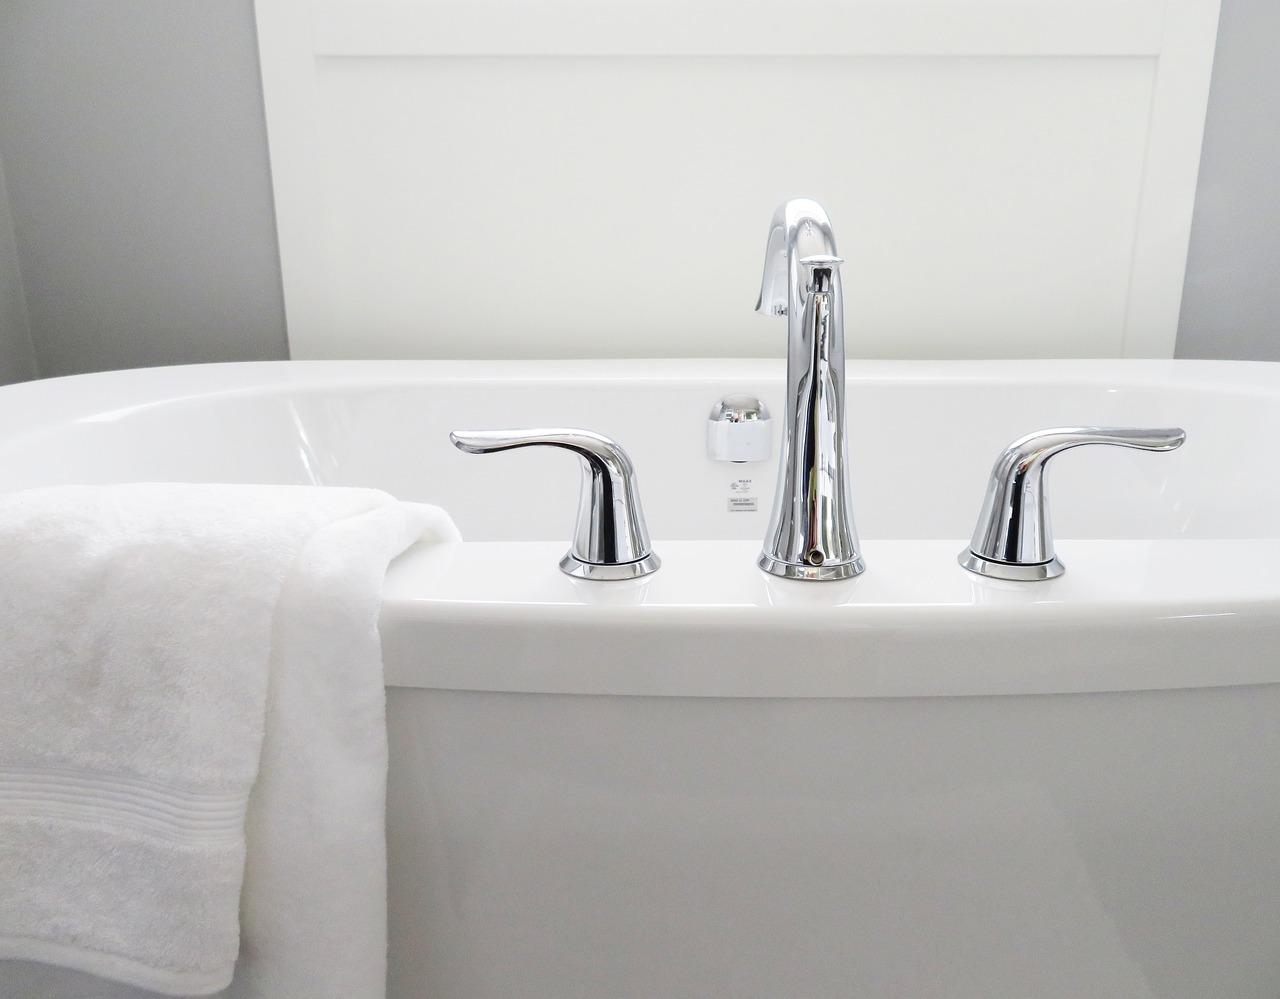 How to Remove Stains from Bathtub- Acrylic Bathtubs